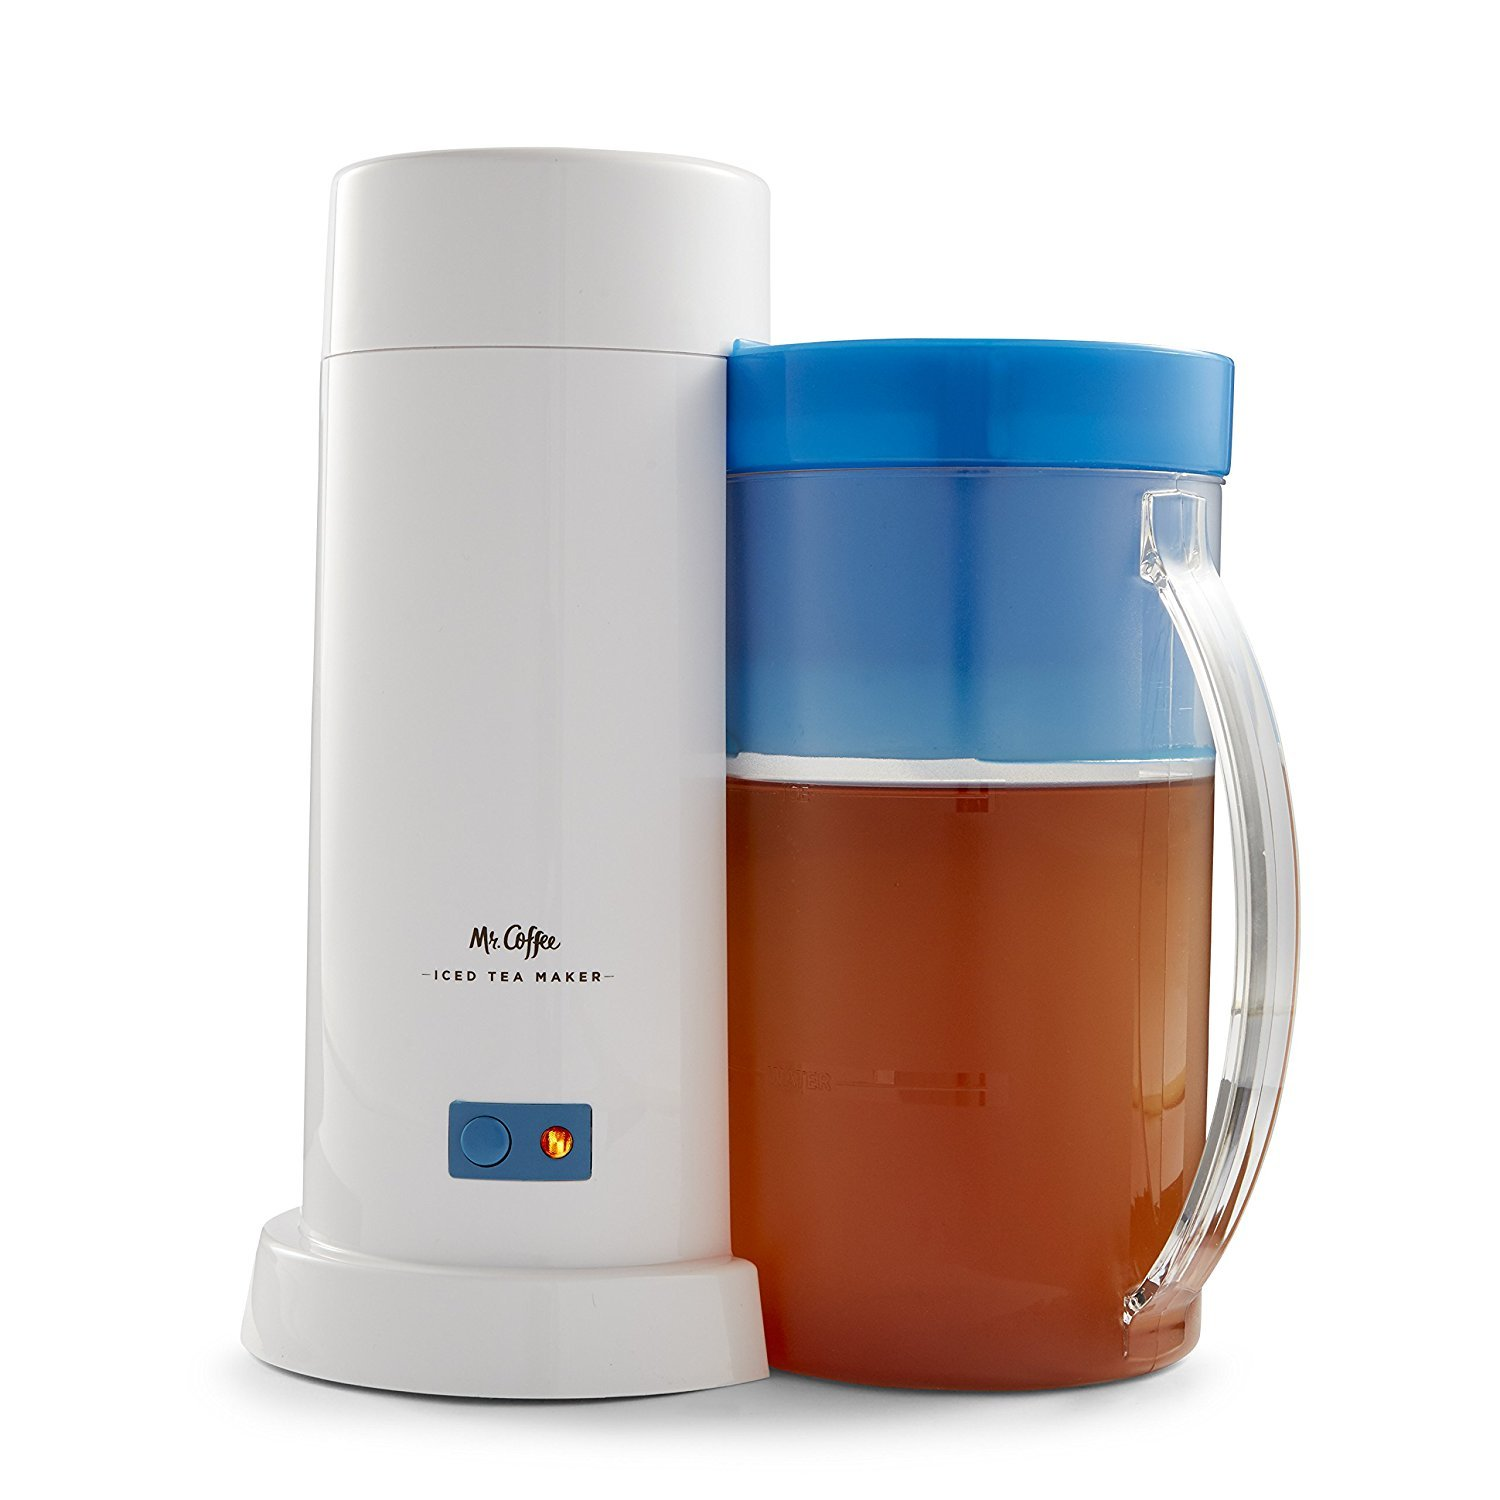 TM1 2-Quart Iced Tea Maker for Loose or Bagged Tea, Blue by Mr. Coffee. (Image #1)